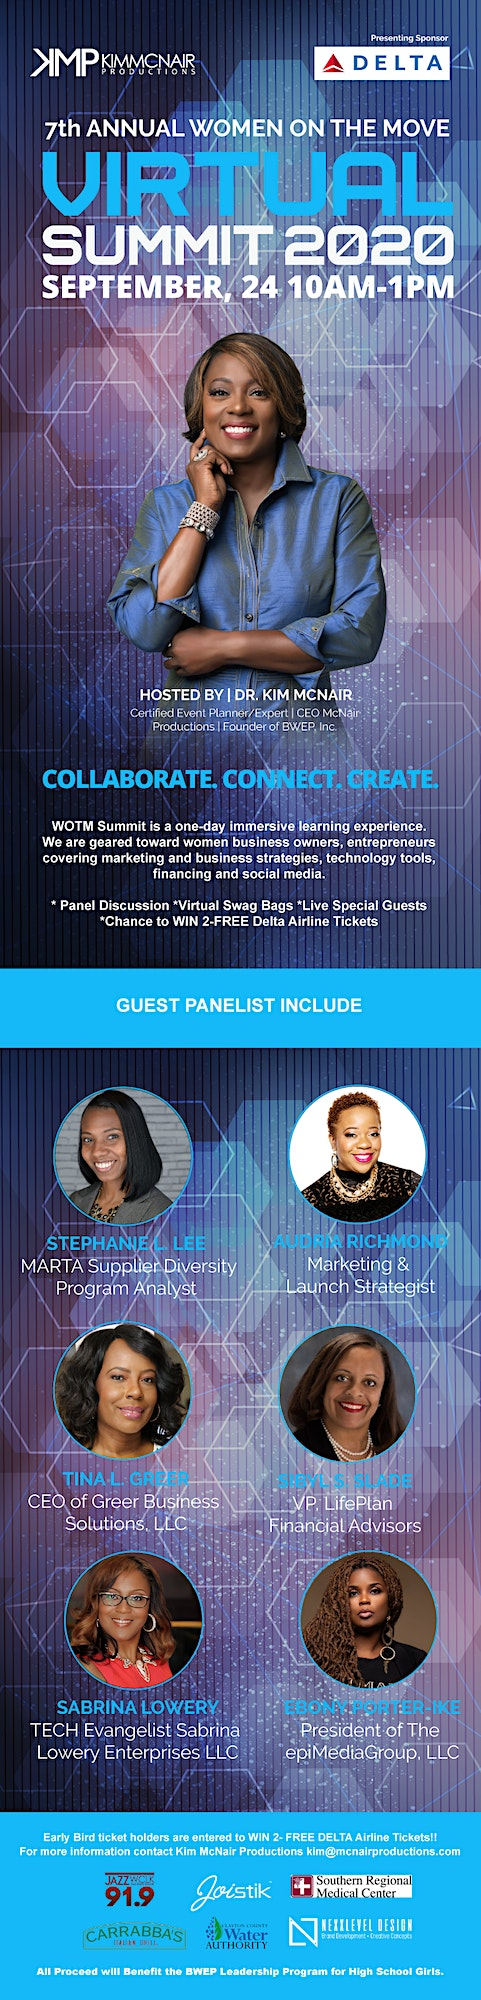 7th Annual Women on the Move VIRTUAL Summit 2020 image